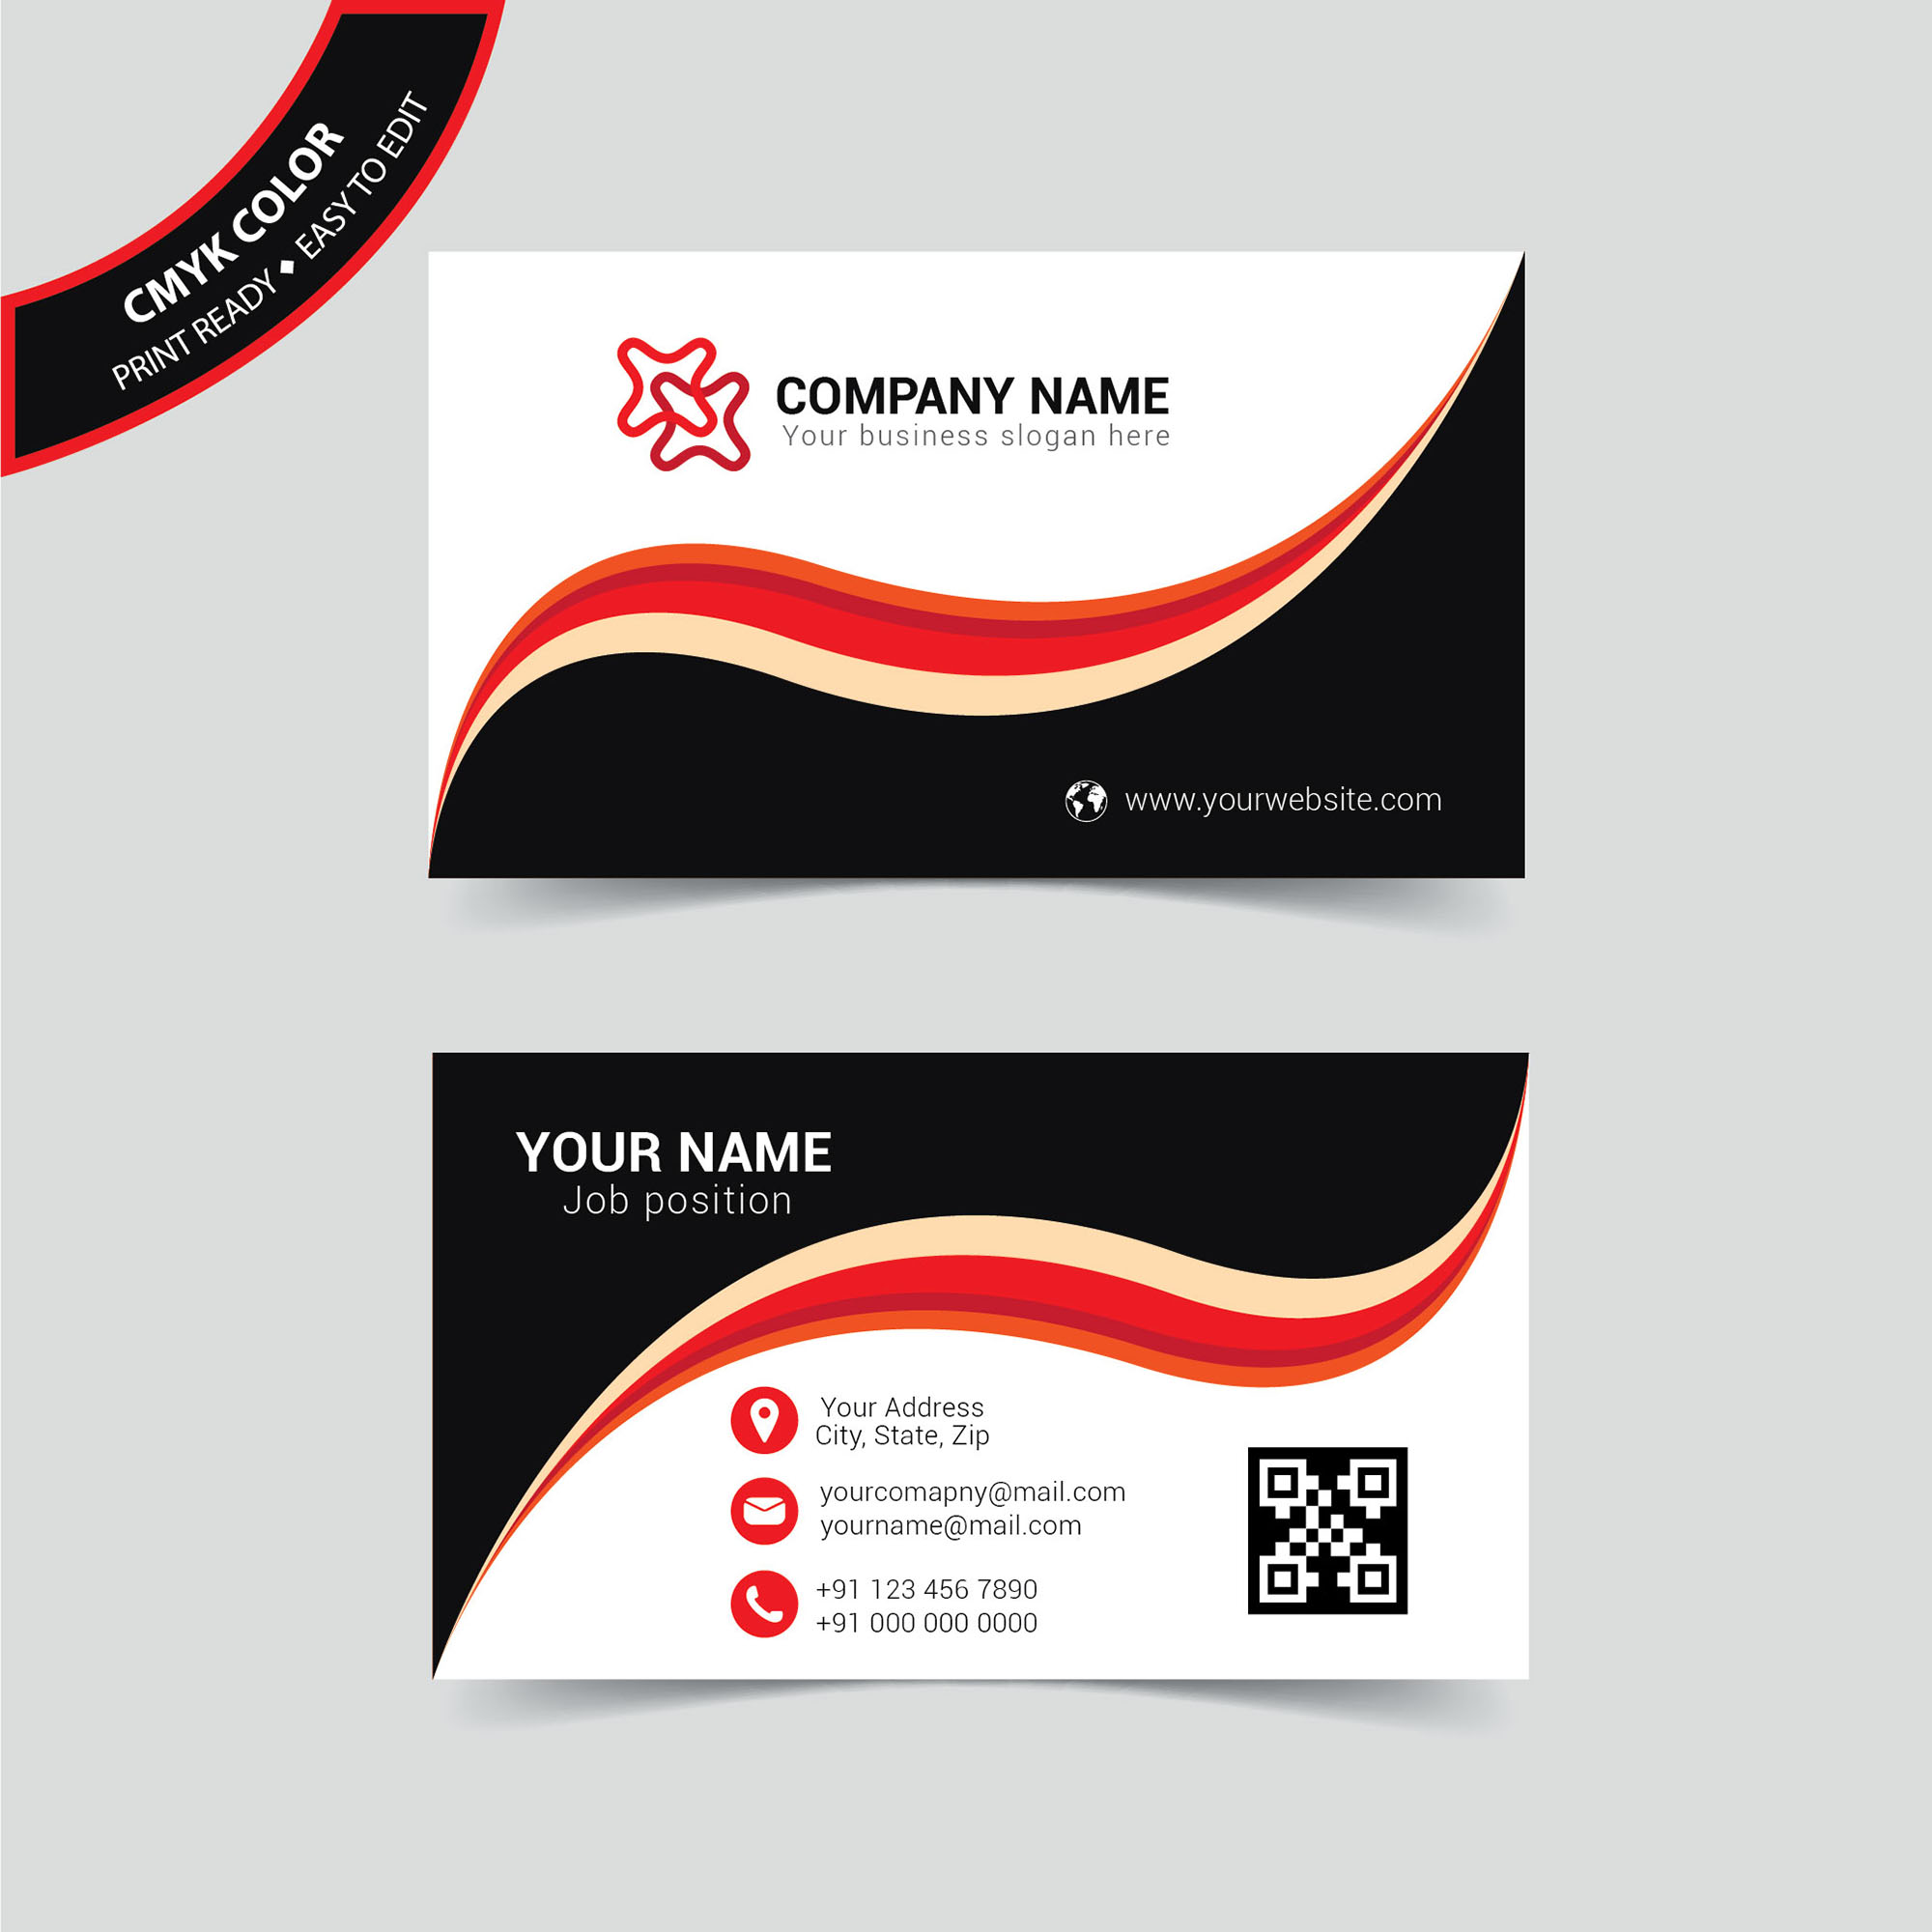 Corporate name card design free download wisxi business card business cards business card design business card template design templates accmission Image collections